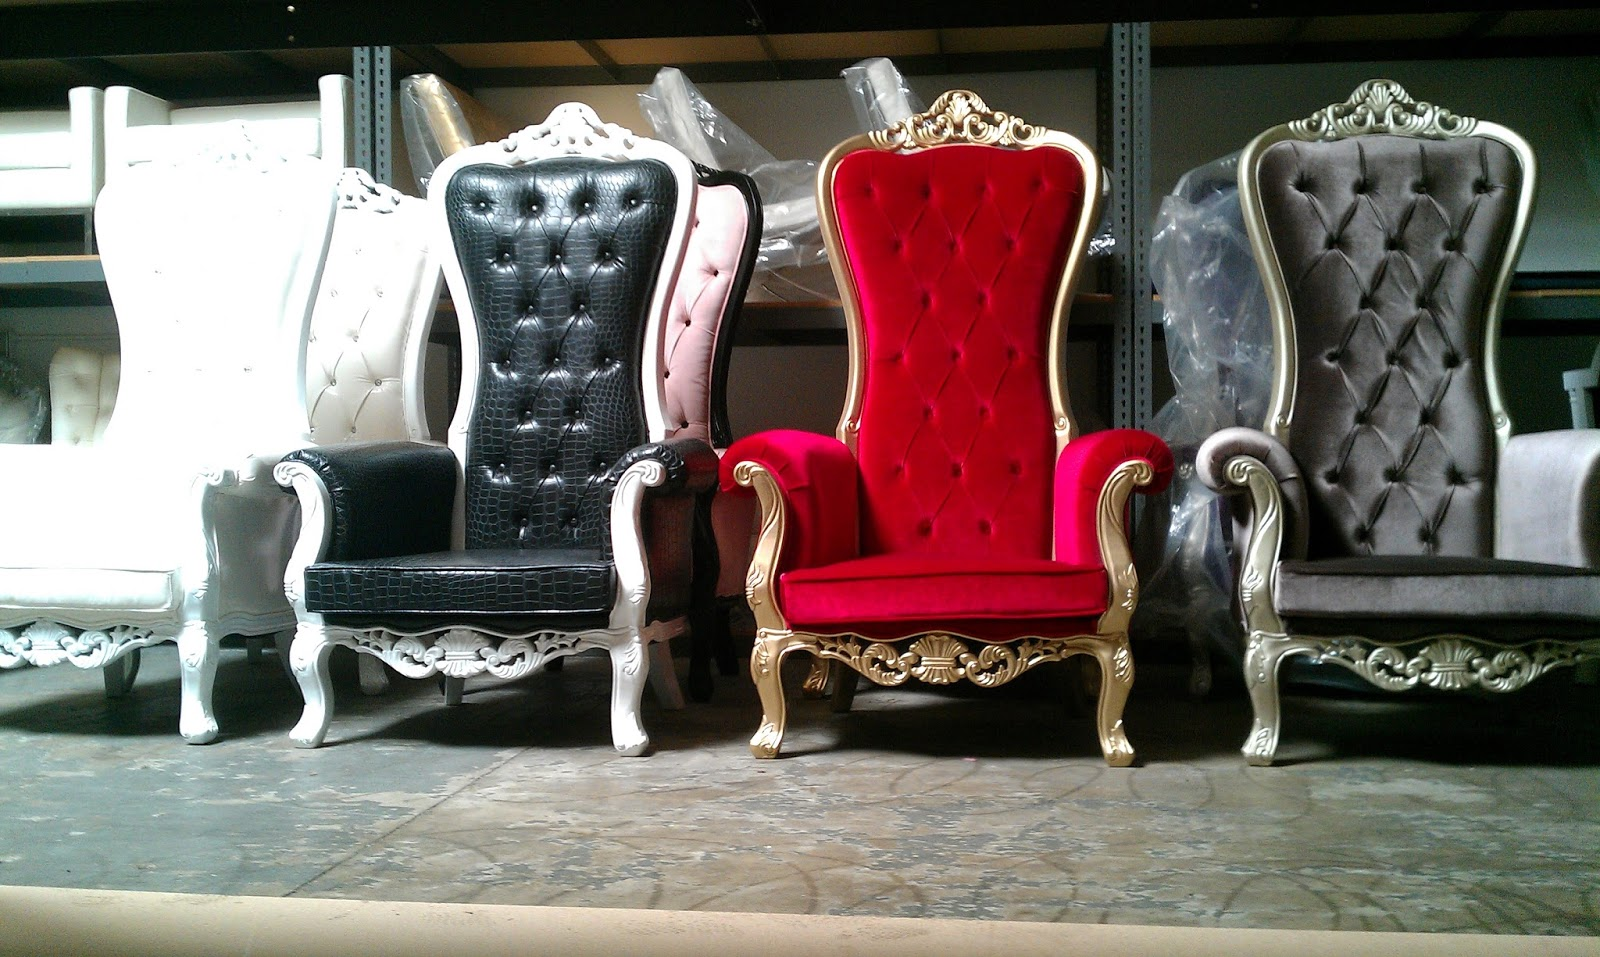 The Mod Spot MCR 1 Throne Rental Prop pany in OC